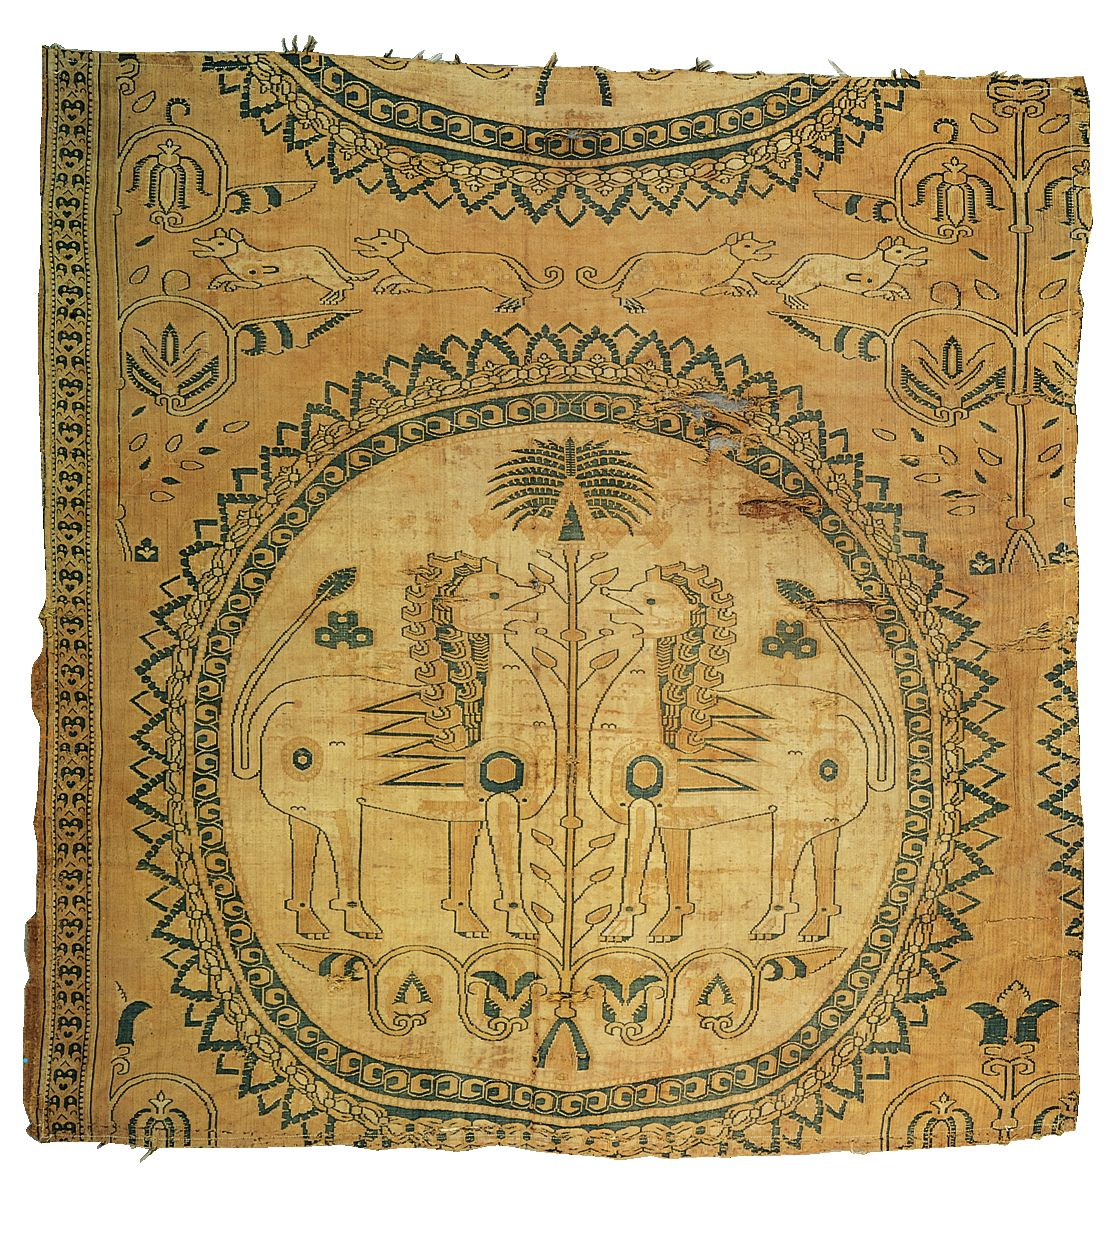 [Unknown,Confronting lions and palm tree,fragment of a textile said to be from Zandana, eighth century.Silk compound twill,Islamic art.] Silk textiles and wool carpets are among the glories of Islamic art. Silk textiles were probably from China.The design perhaps based on Sasanian models. Such zoomorphic motifs are foreign to the decorative vocabulary of mosque architecture, but they could be found in Muslim households (Kleiner 350).